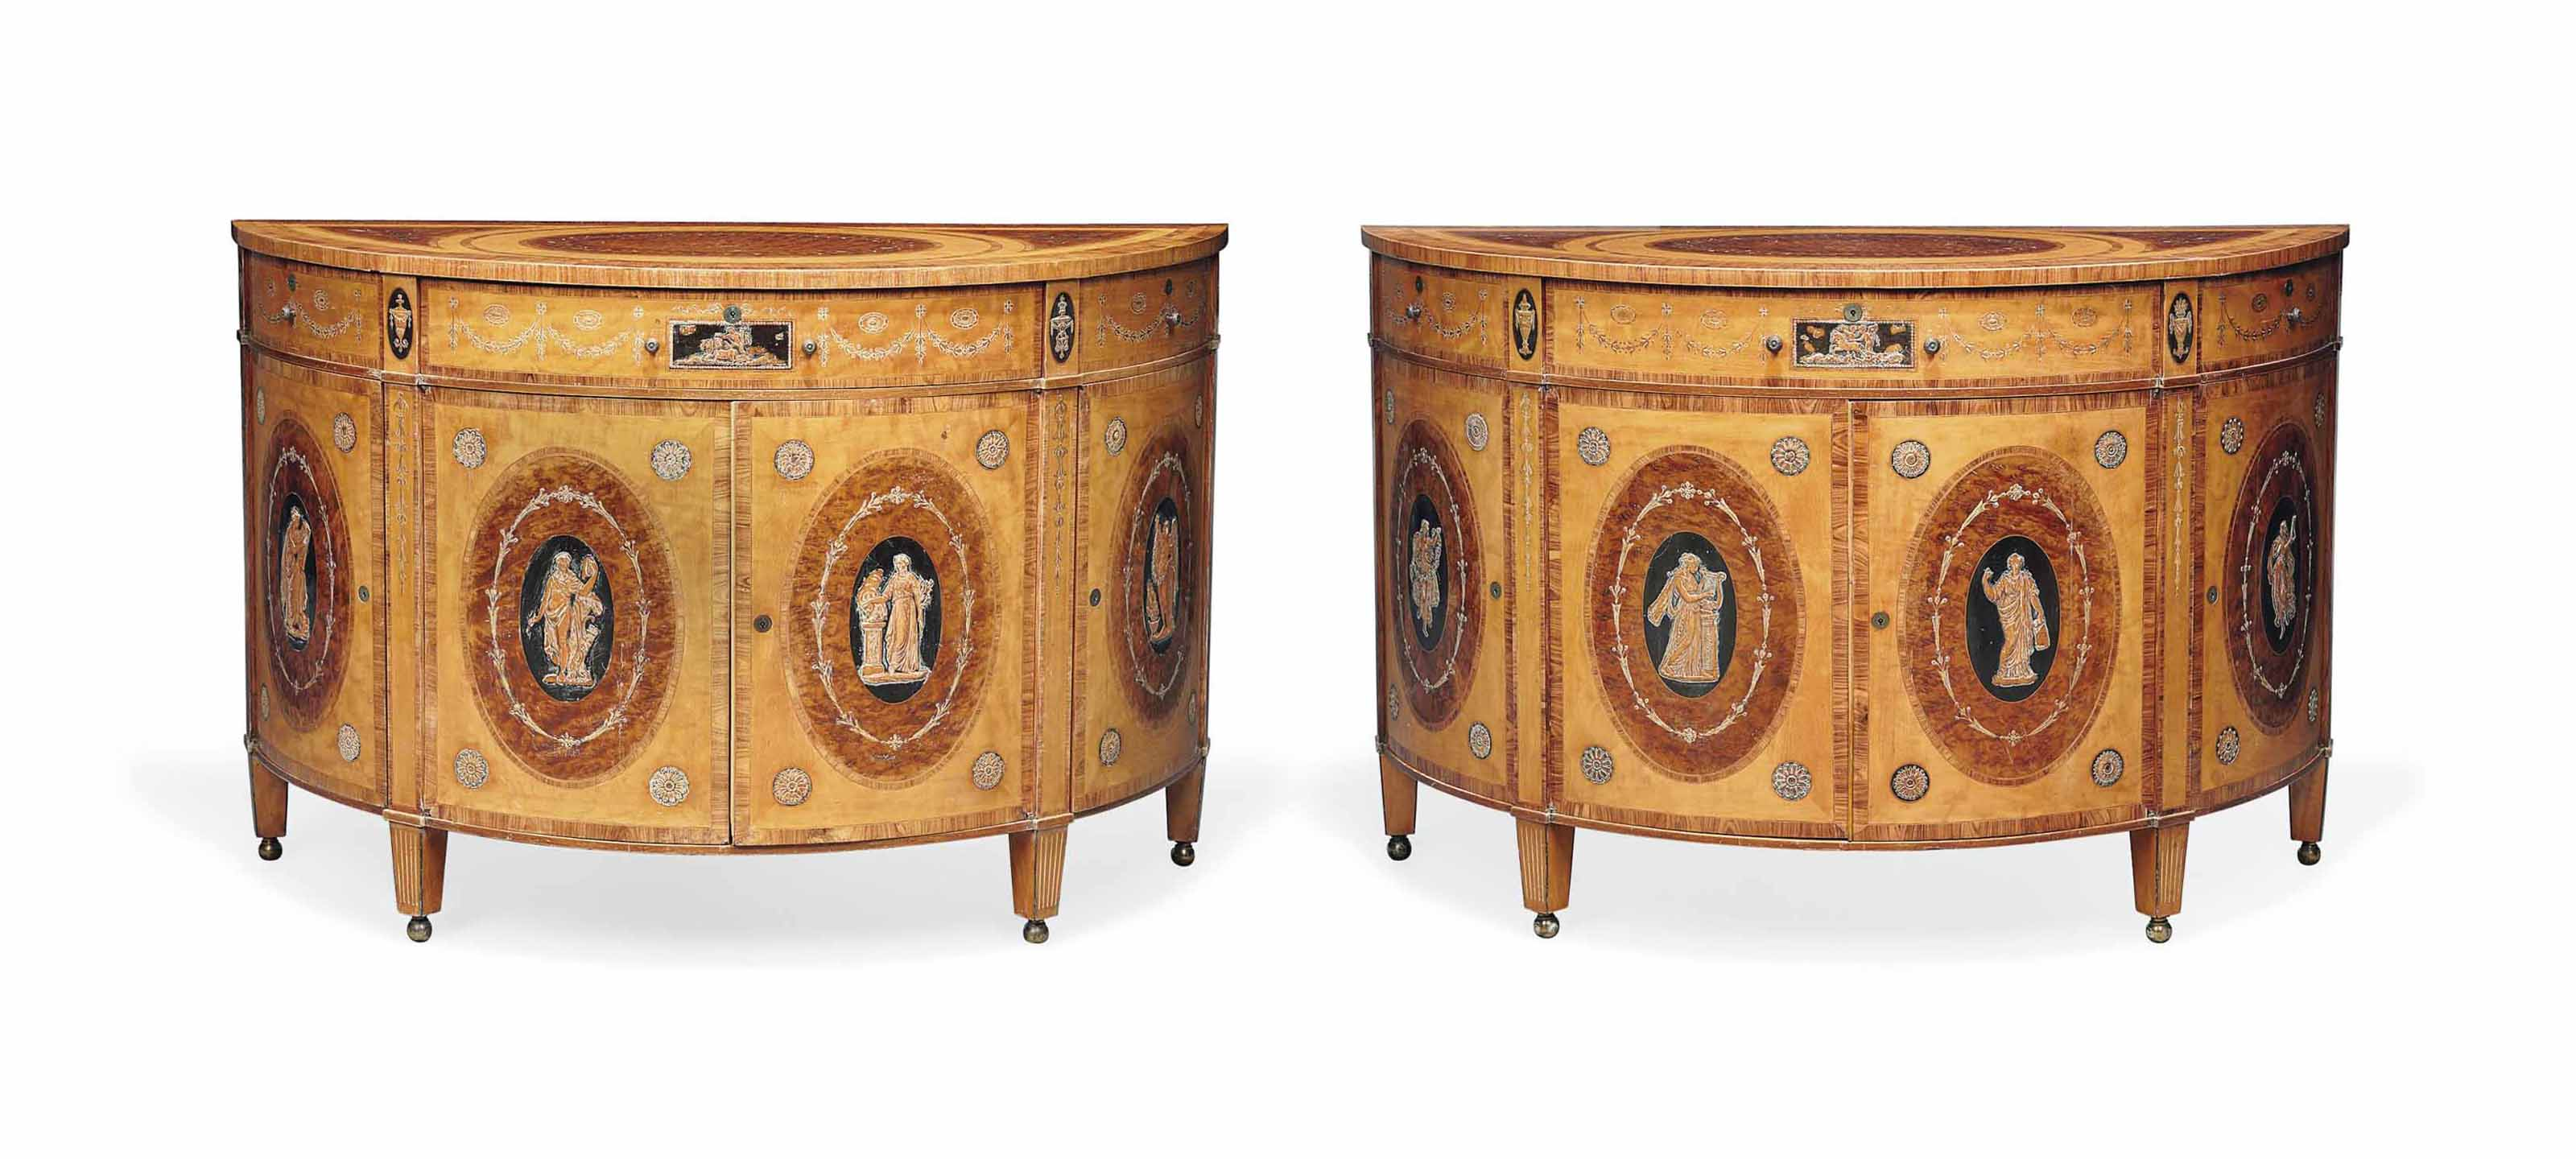 A PAIR OF LATE VICTORIAN THUYA